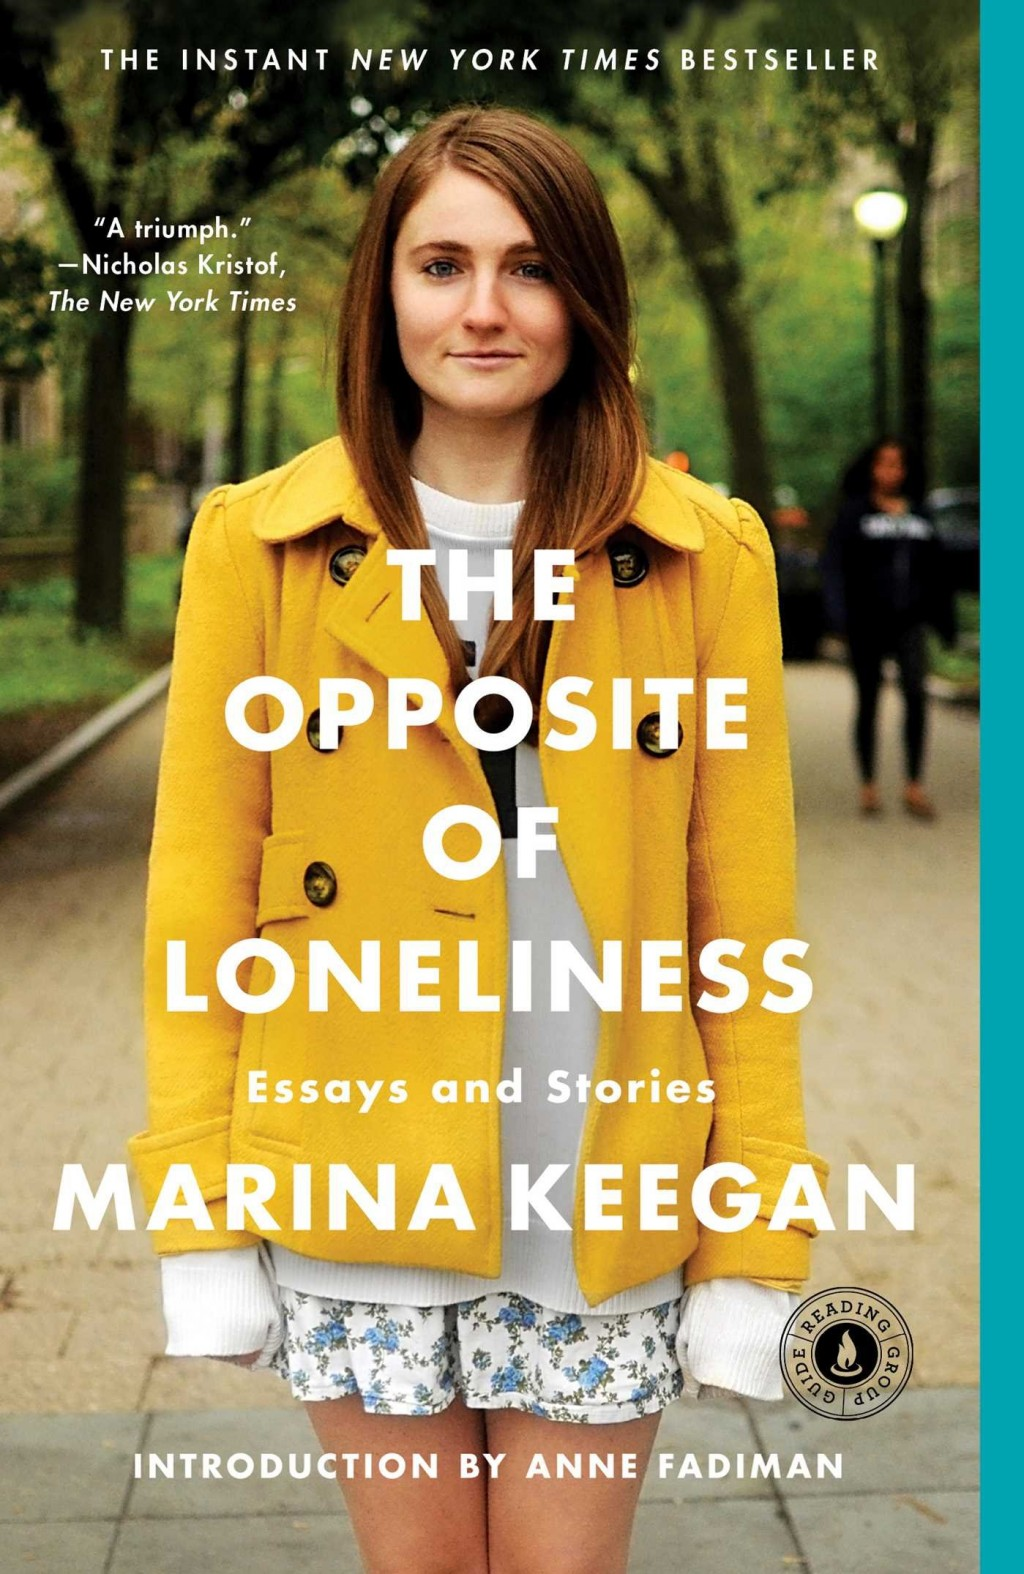 002 81xm Clxskl The Opposite Of Loneliness Essay Fascinating Book Essays And Stories Large